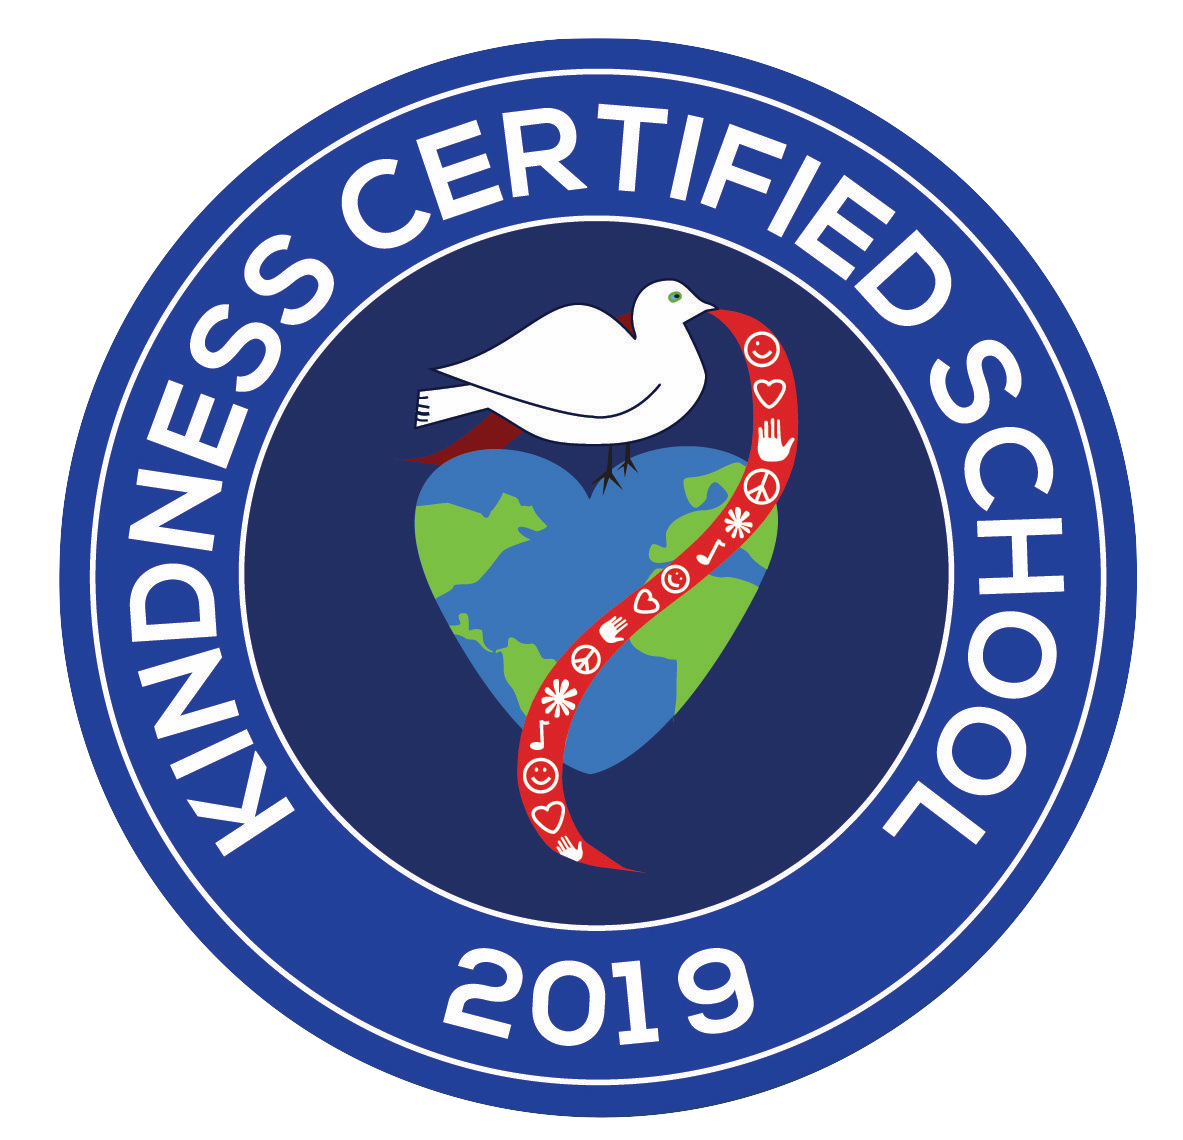 Kindness Certified School 2019 Logo